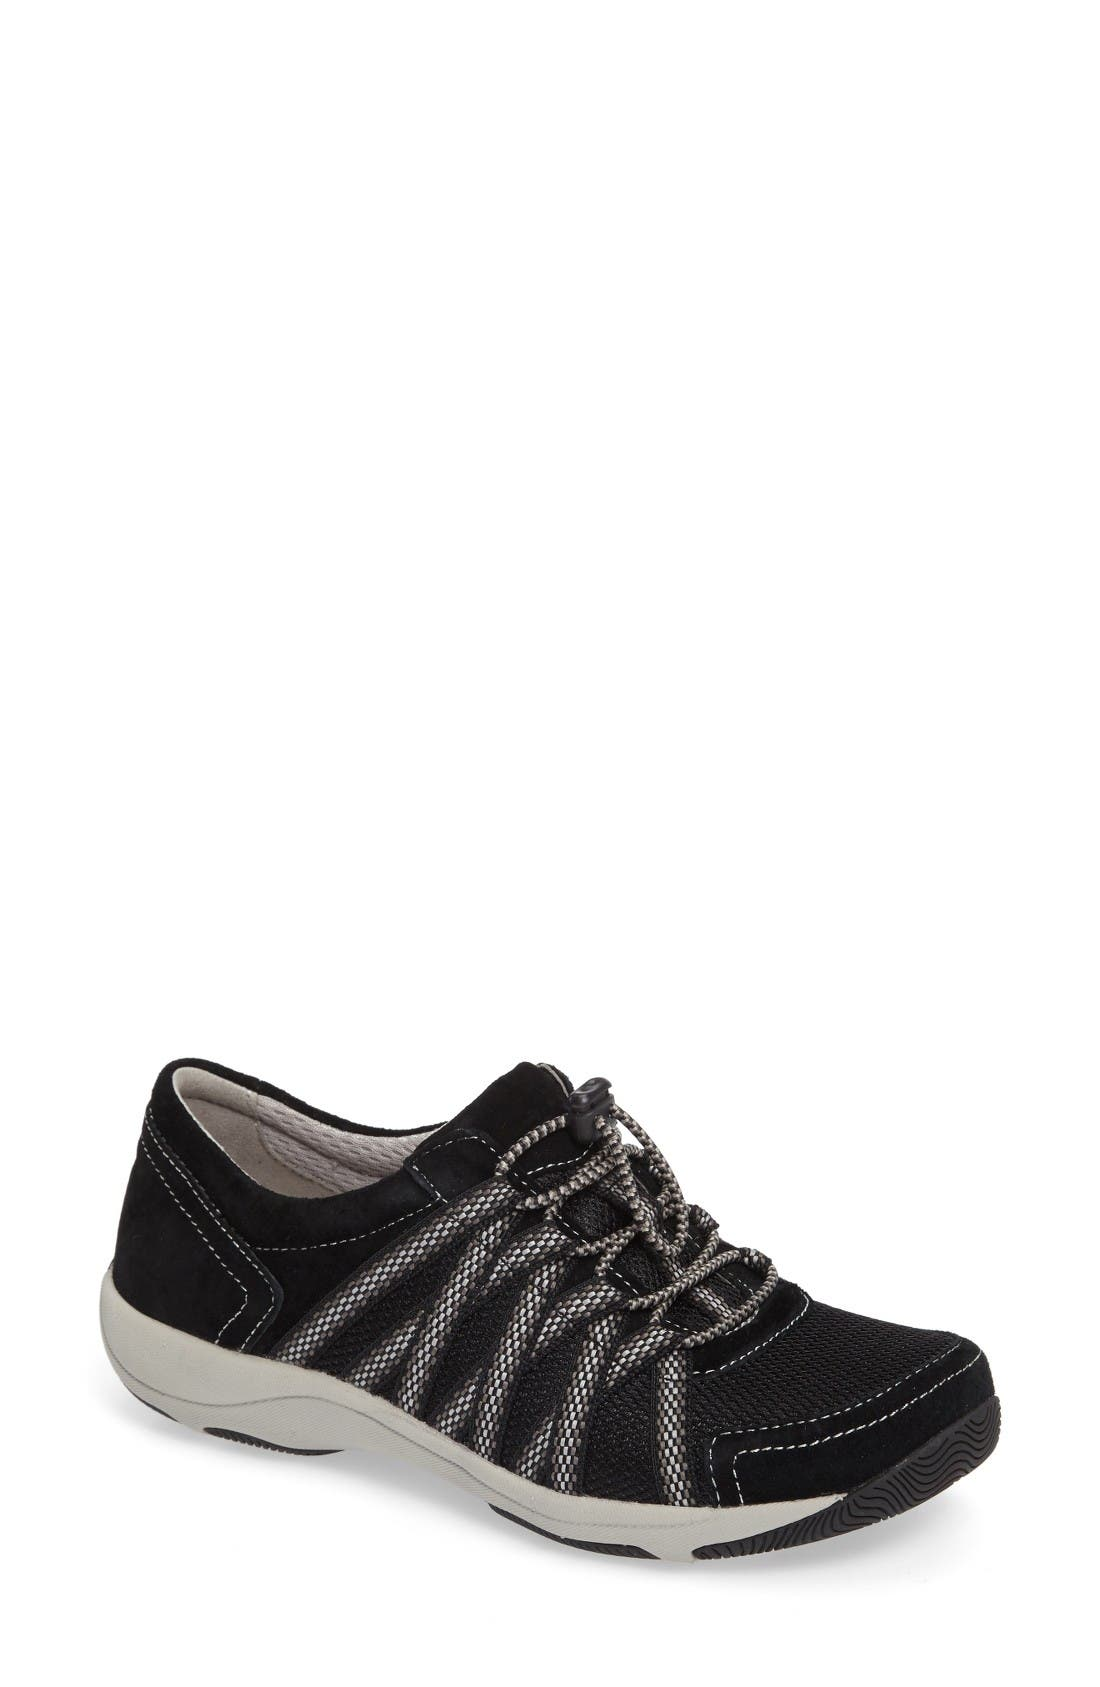 Halifax Collection Honor Sneaker,                         Main,                         color, Black Suede